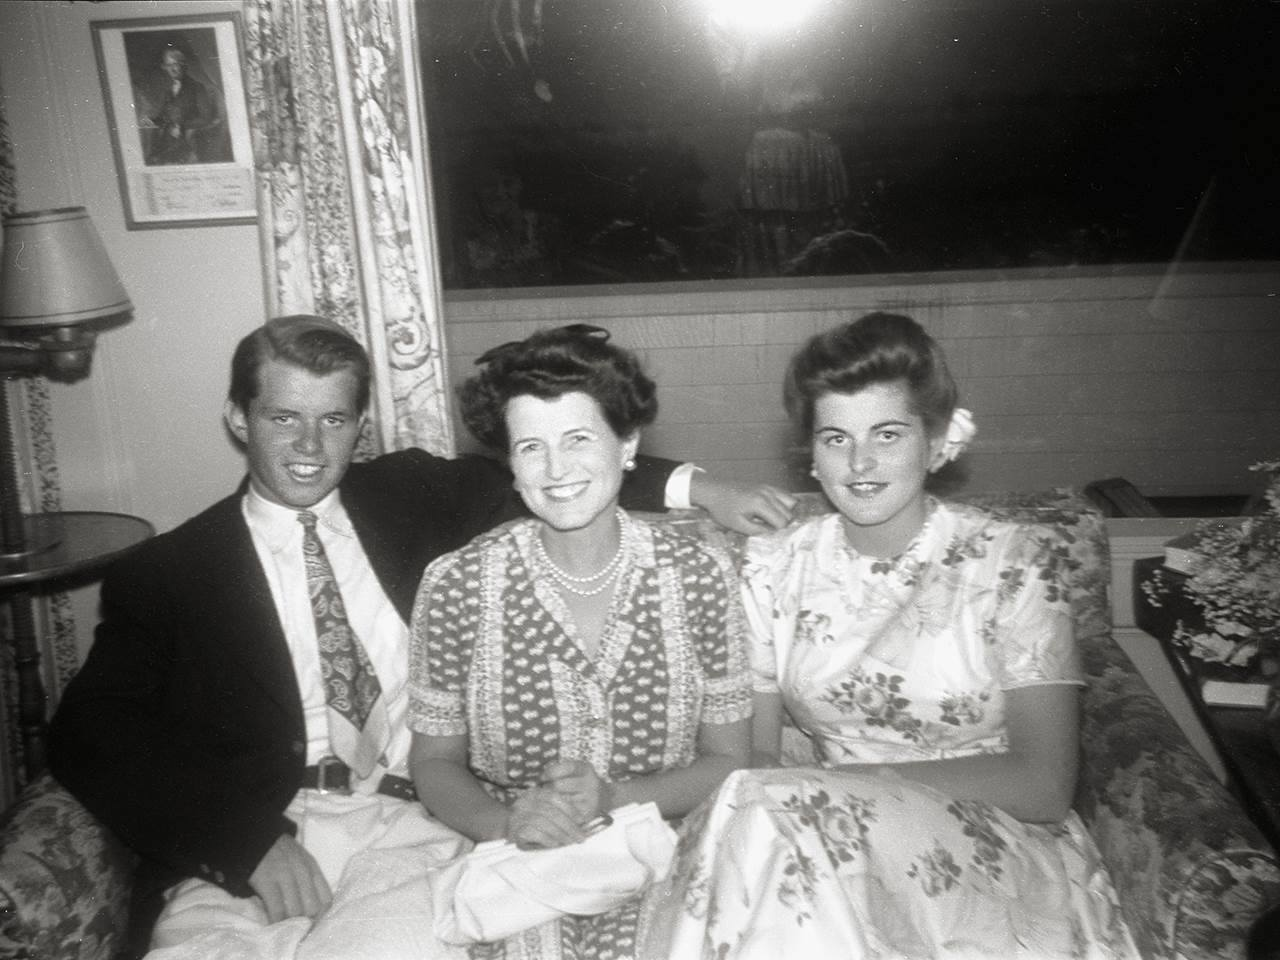 Bobby, Rose, and Pat at the Kennedy home in Hyannis Port, Mass., circa 1942